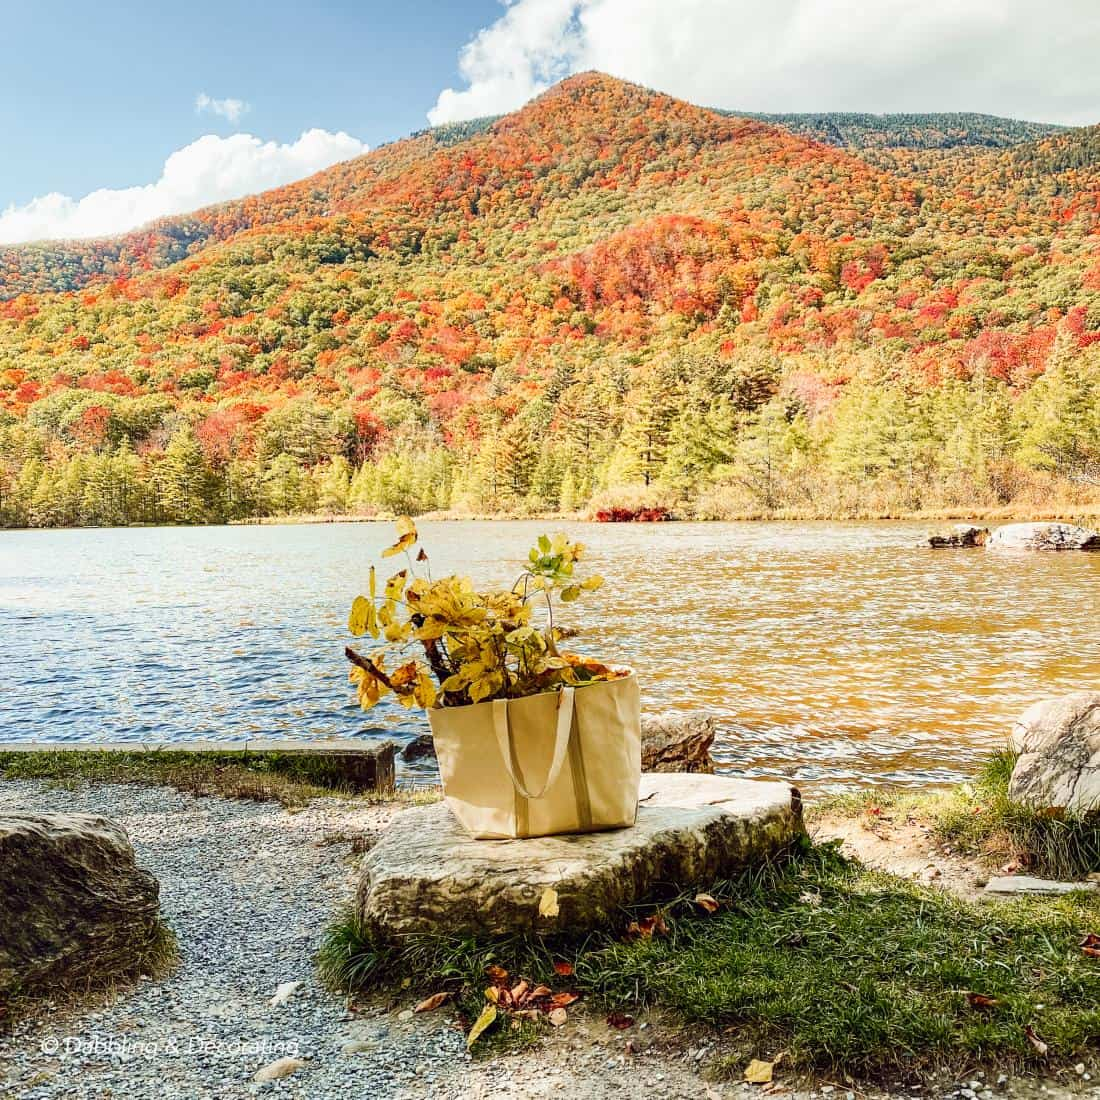 A bag of leaves in front of the fall mountains